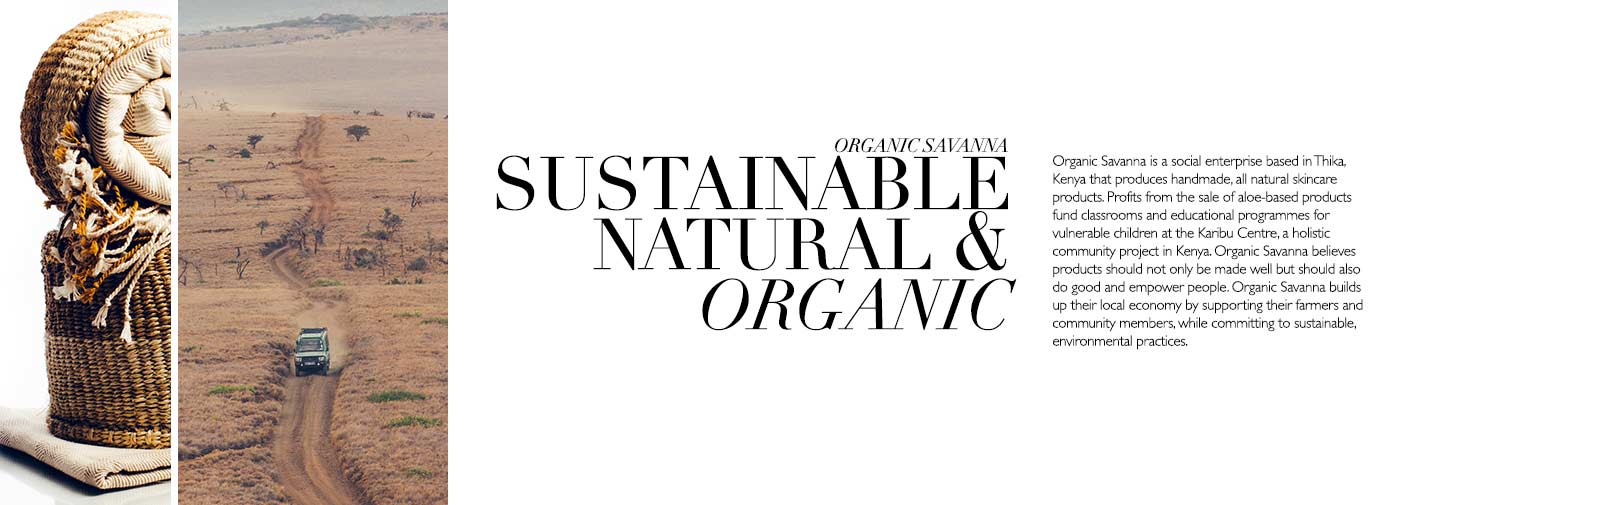 Organic Savanna is an impact driven skincare brand with a mission to empower people. Our story grew from the simple idea that products should not only be made well but also do good. We want to give consumers the opportunity to shop responsibly.